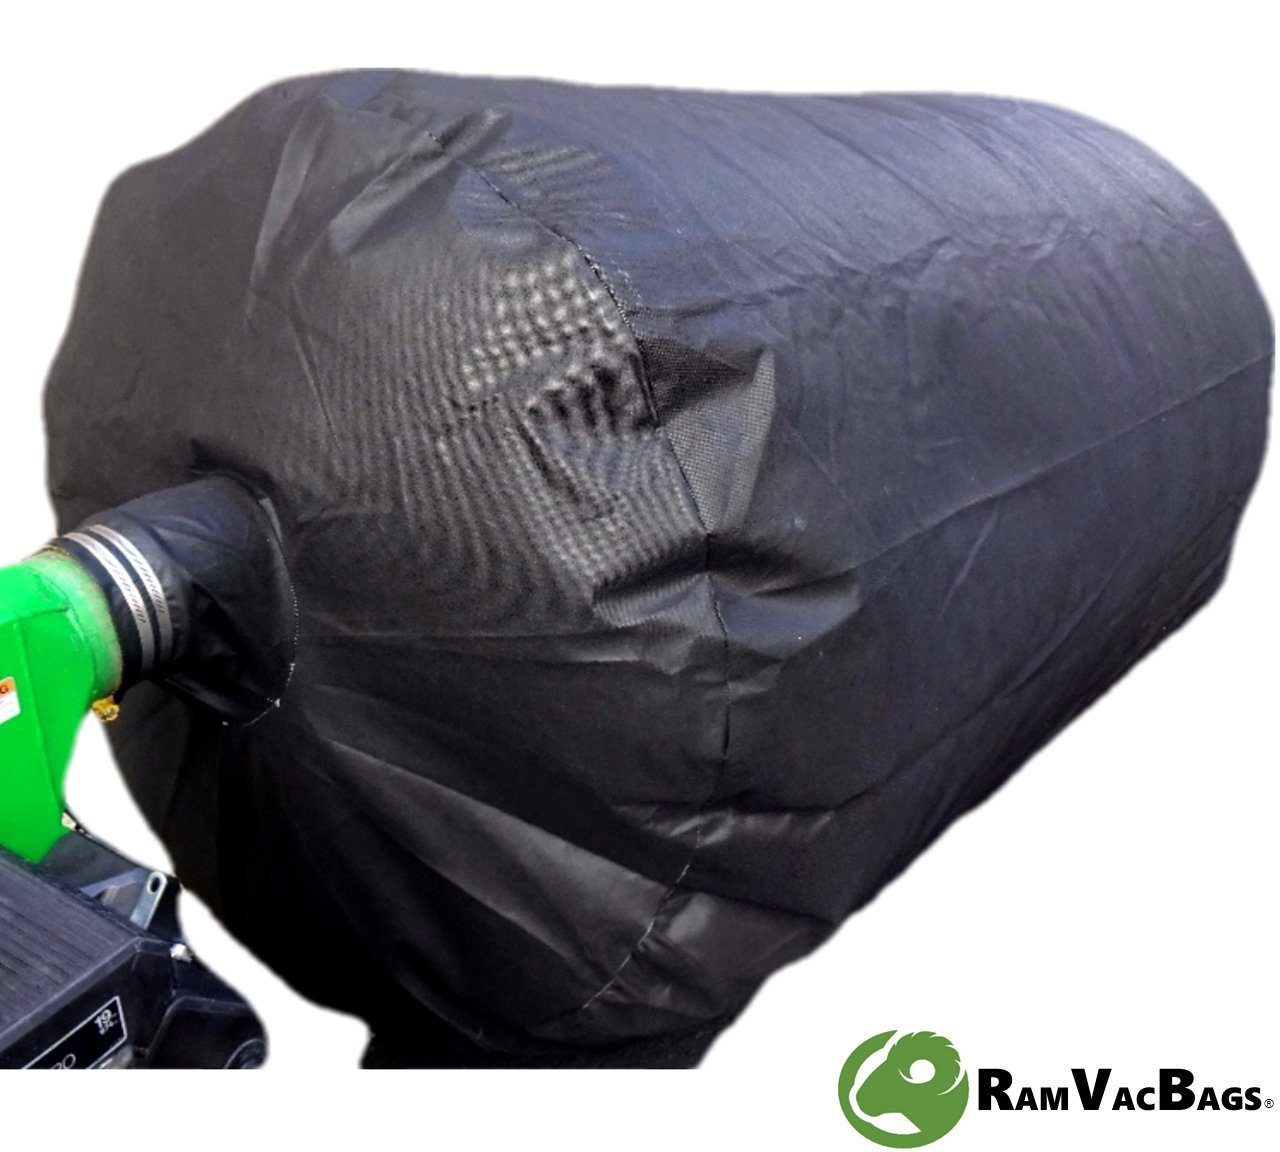 10 INSULATION REMOVAL VACUUM BAGS BLACK SUPER HEAVY DUTY 6' x 4' Hold 450 LBS / 75 cf - 2 FREE Coverall Suits Included. PRO-450 BAG by RamVacBags by RamVacBags.com